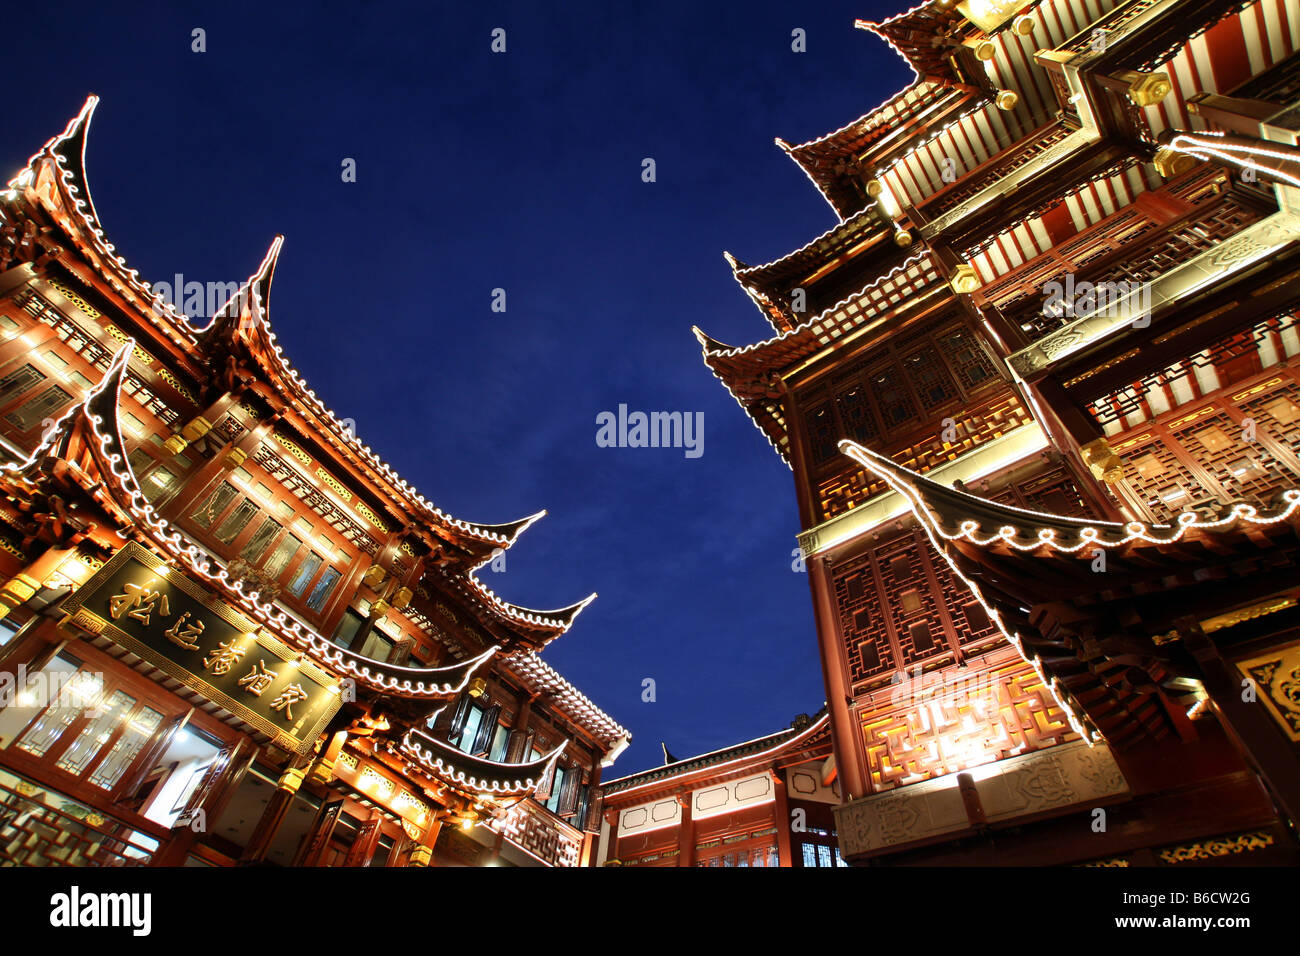 Low angle view of buildings lit up at night, Yuyuan Garden Bazaar, Shanghai, China - Stock Image